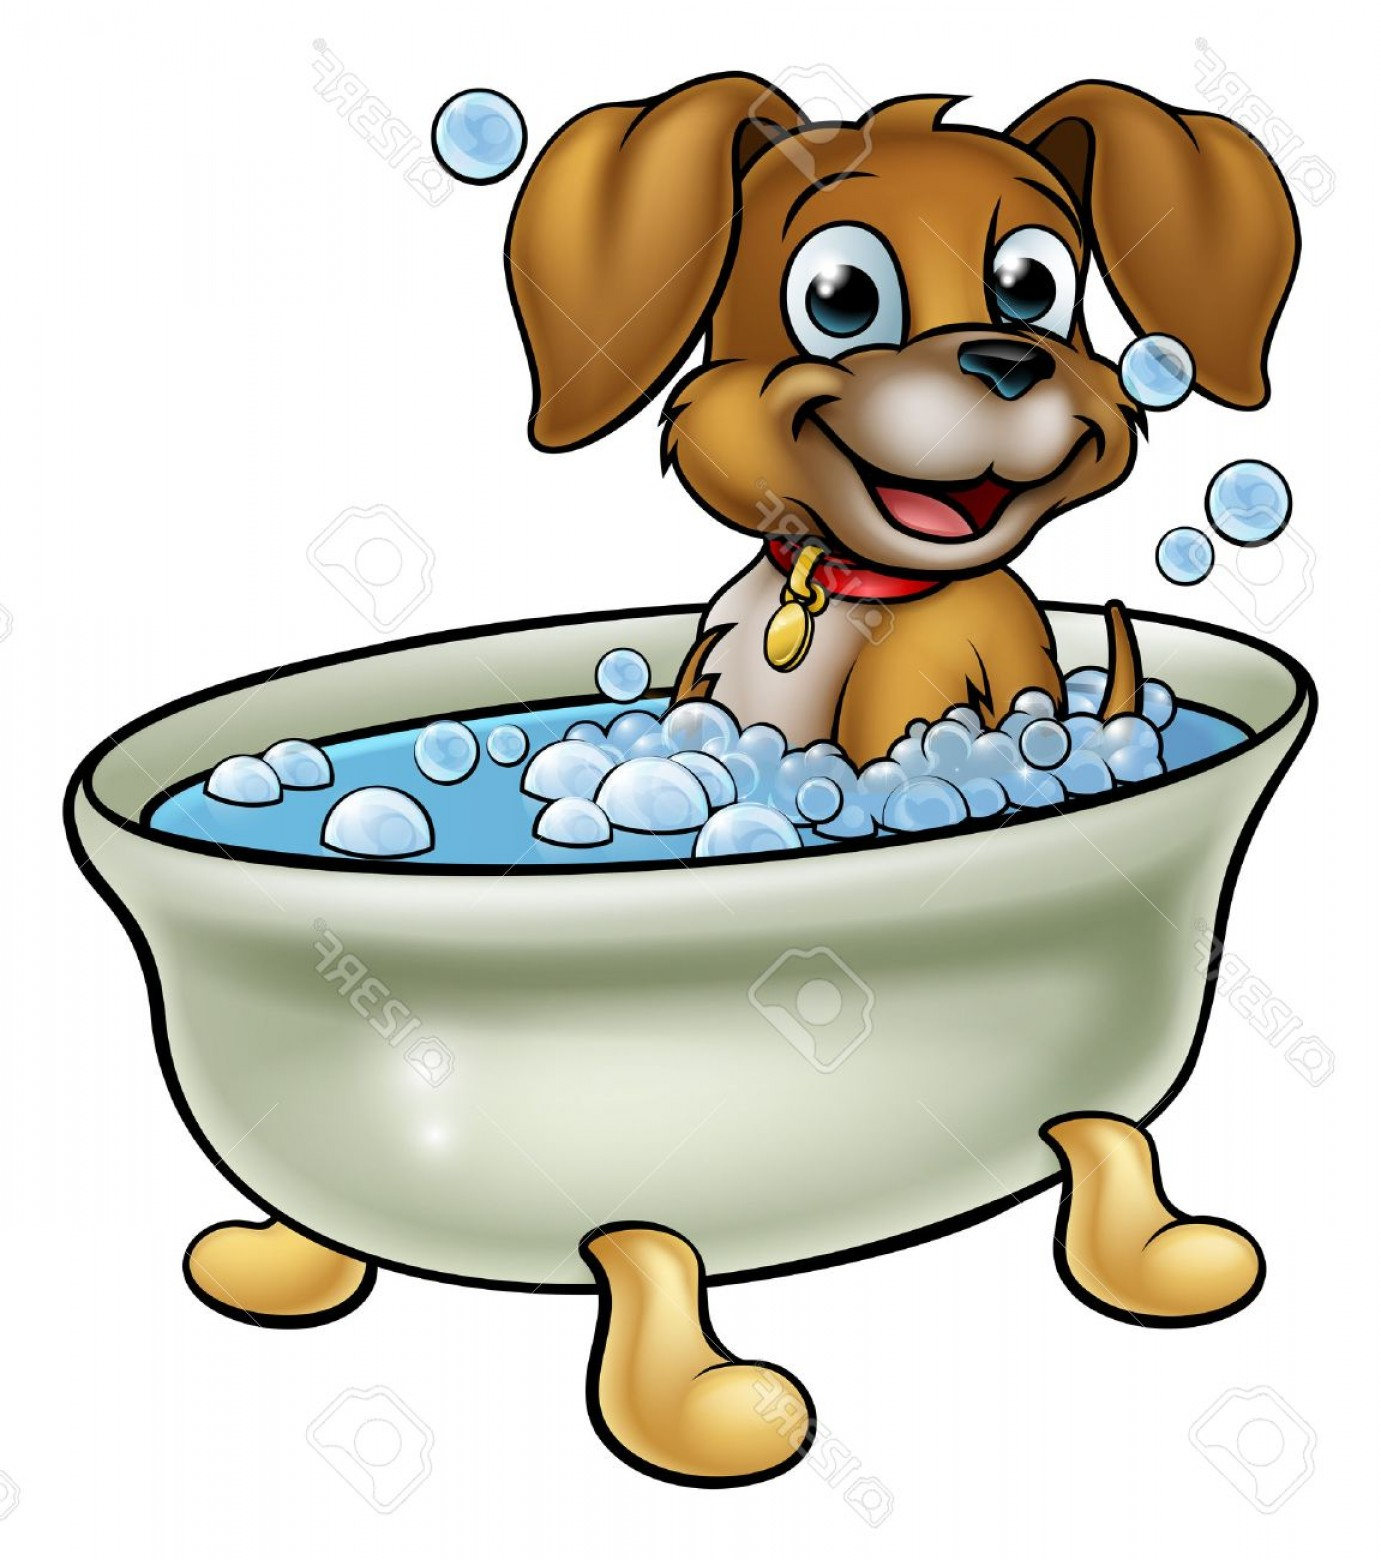 Dog Bubble Bath Vector: Glamorous Photostock Vector A Cartoon Dog Having A Bath With Lots Of Bubbles